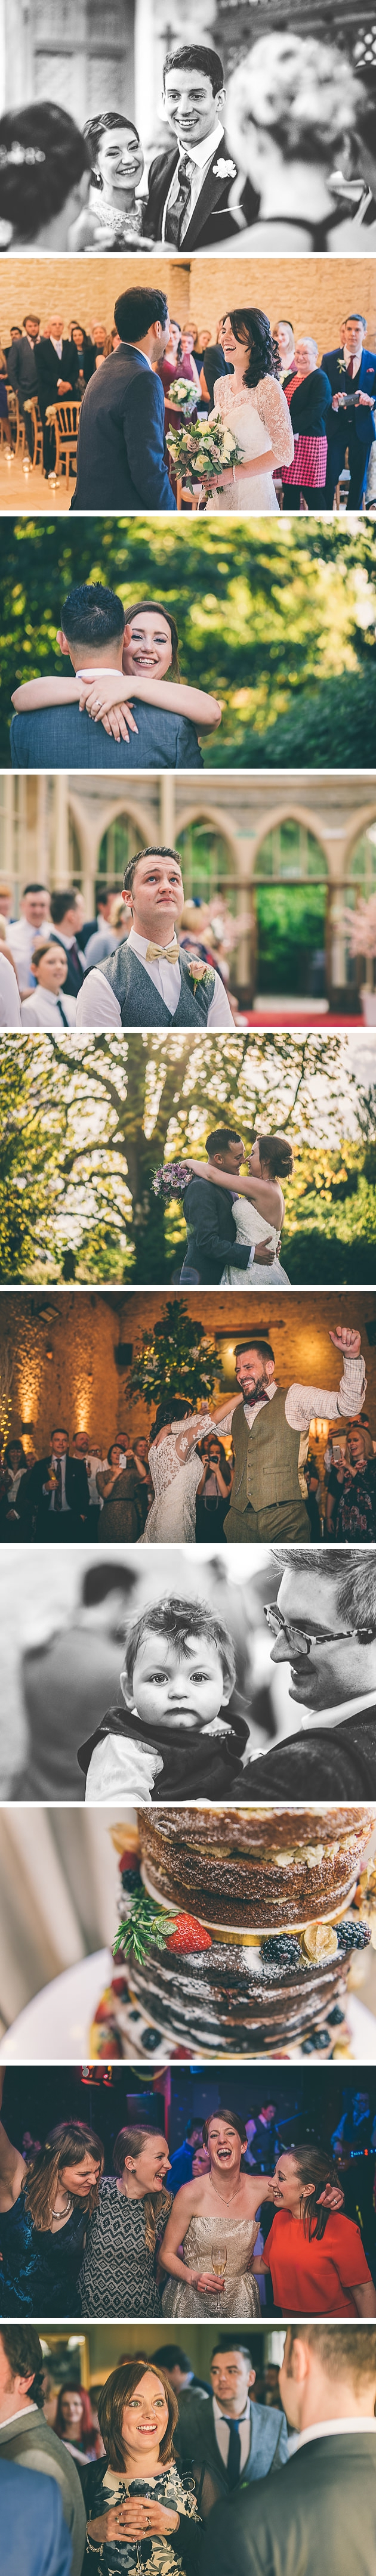 Bride and groom dancing at Cripps Barn